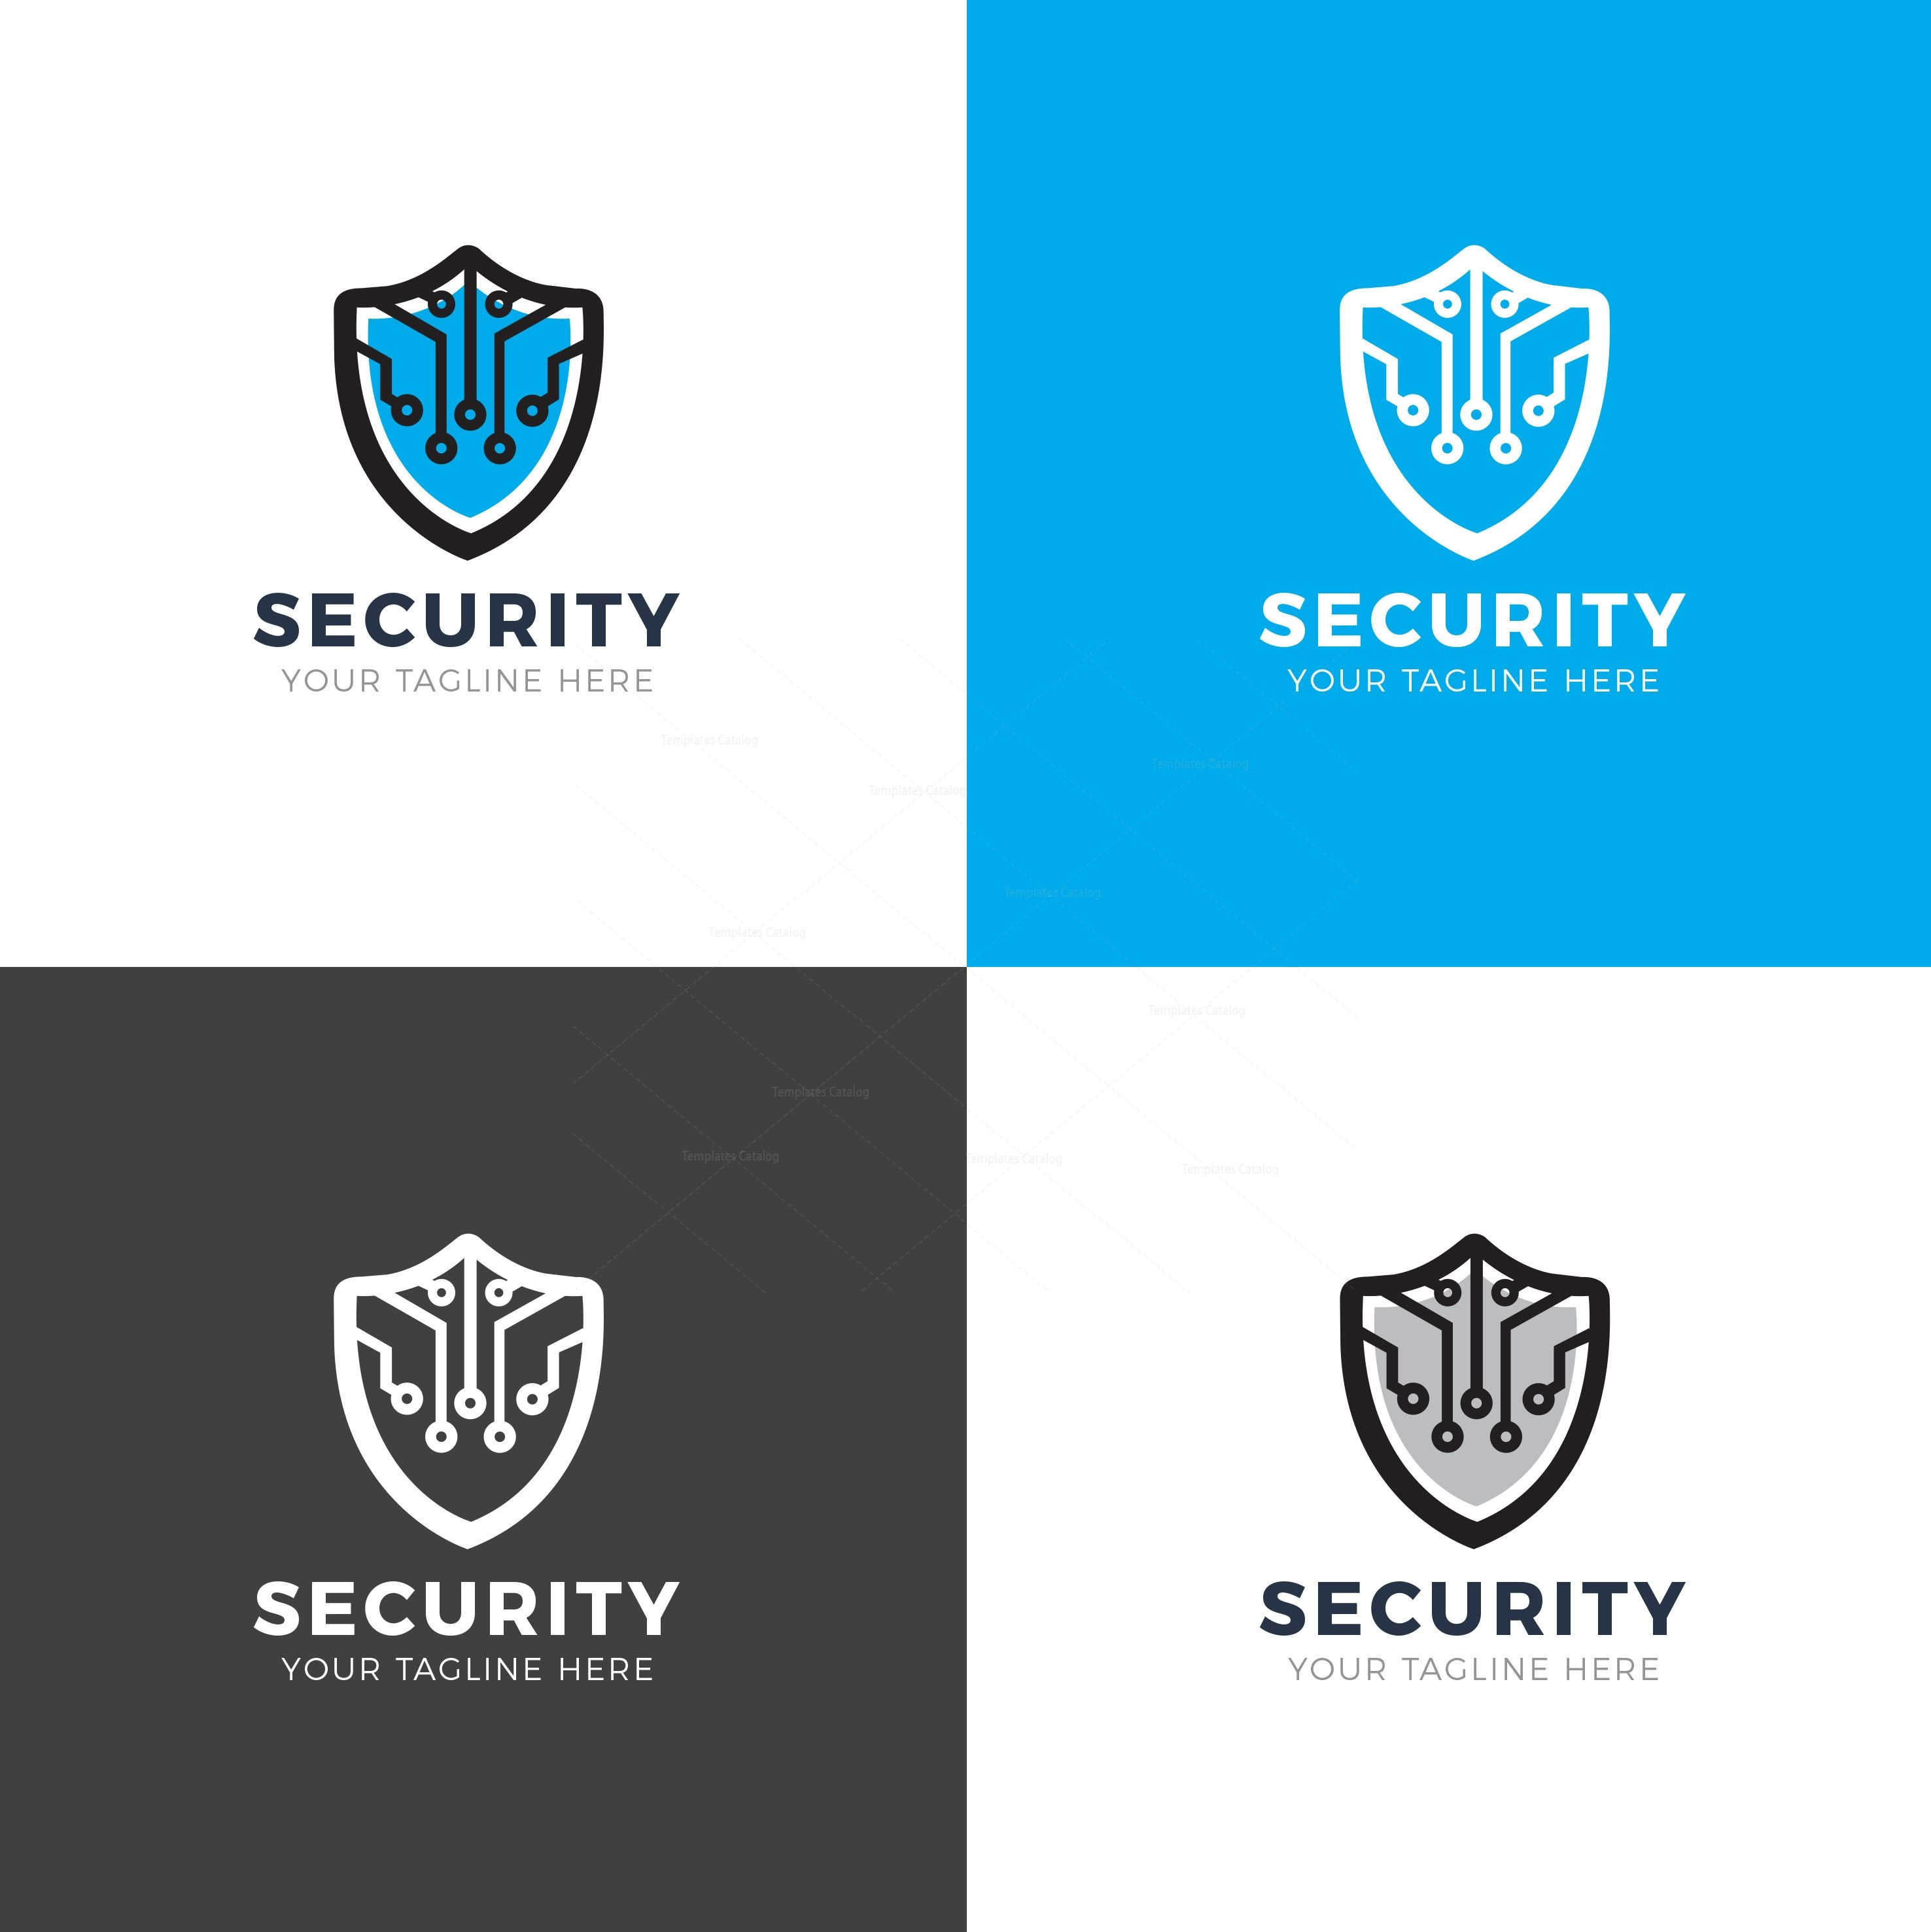 Security Shield Modern Logo Design Template 001913 - Template Catalog